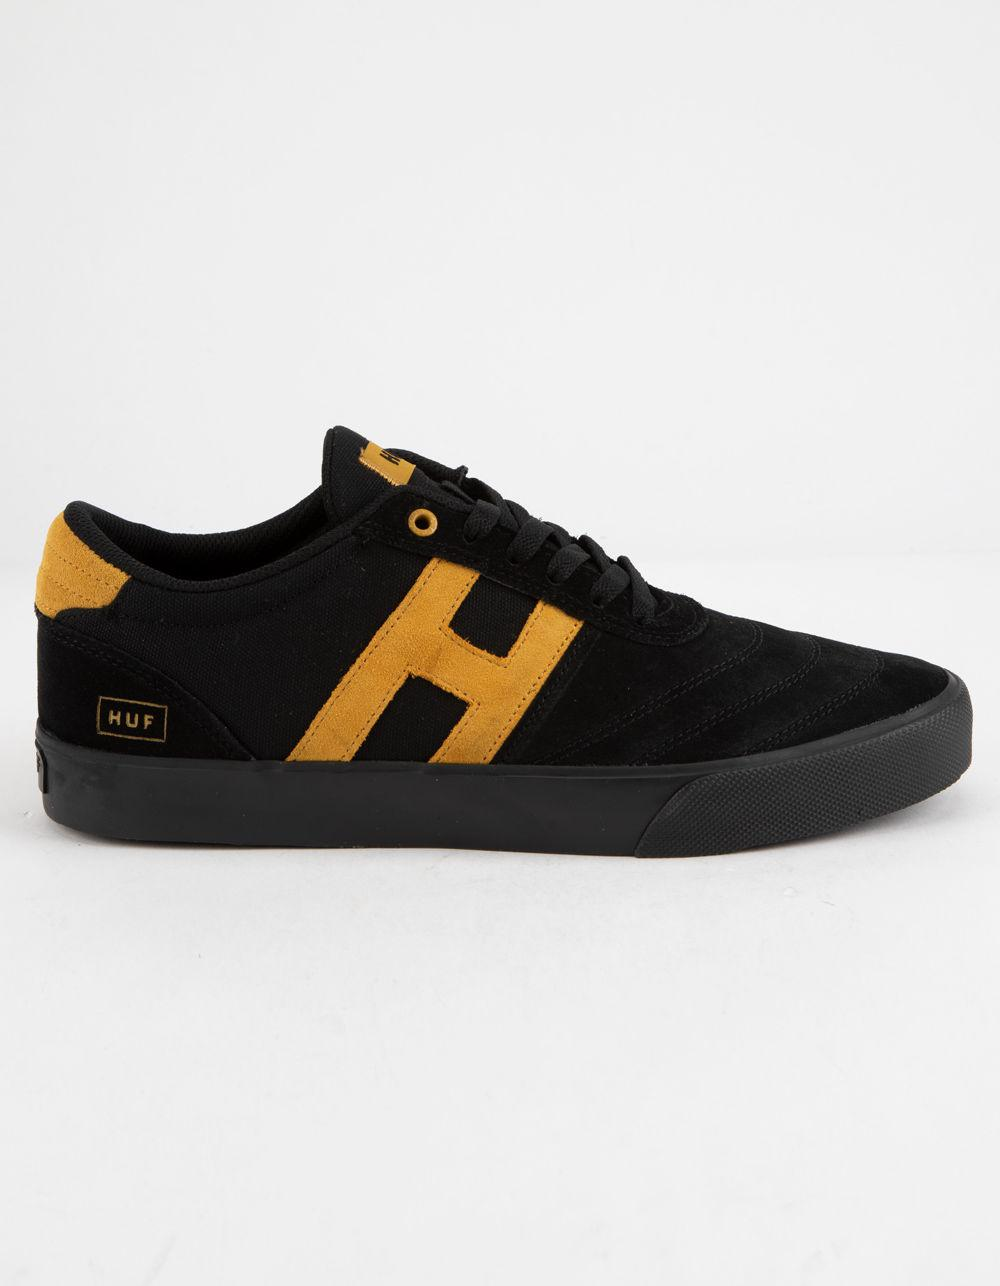 7cc44cd35a31 Huf - Galaxy Trainers In Black for Men - Lyst. View fullscreen